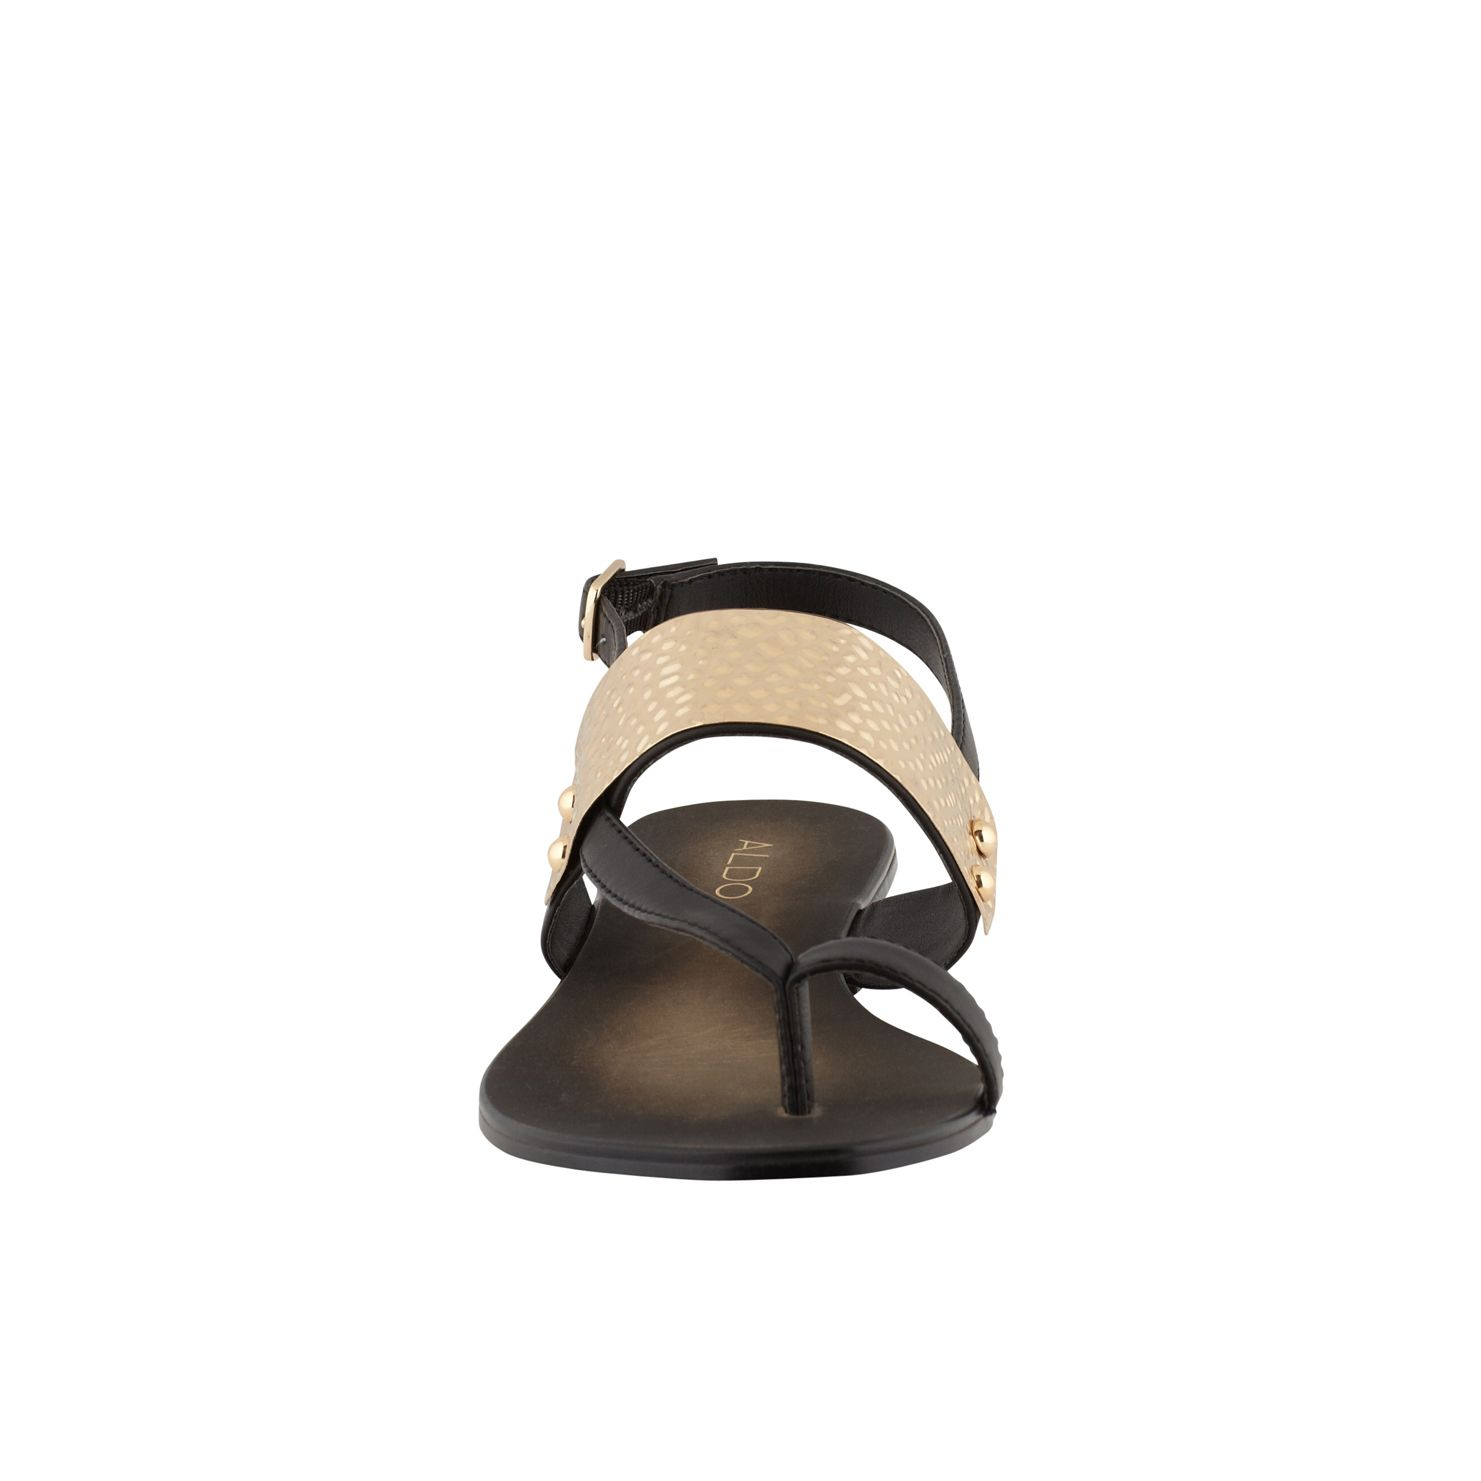 Dolea gold plate detail sandals